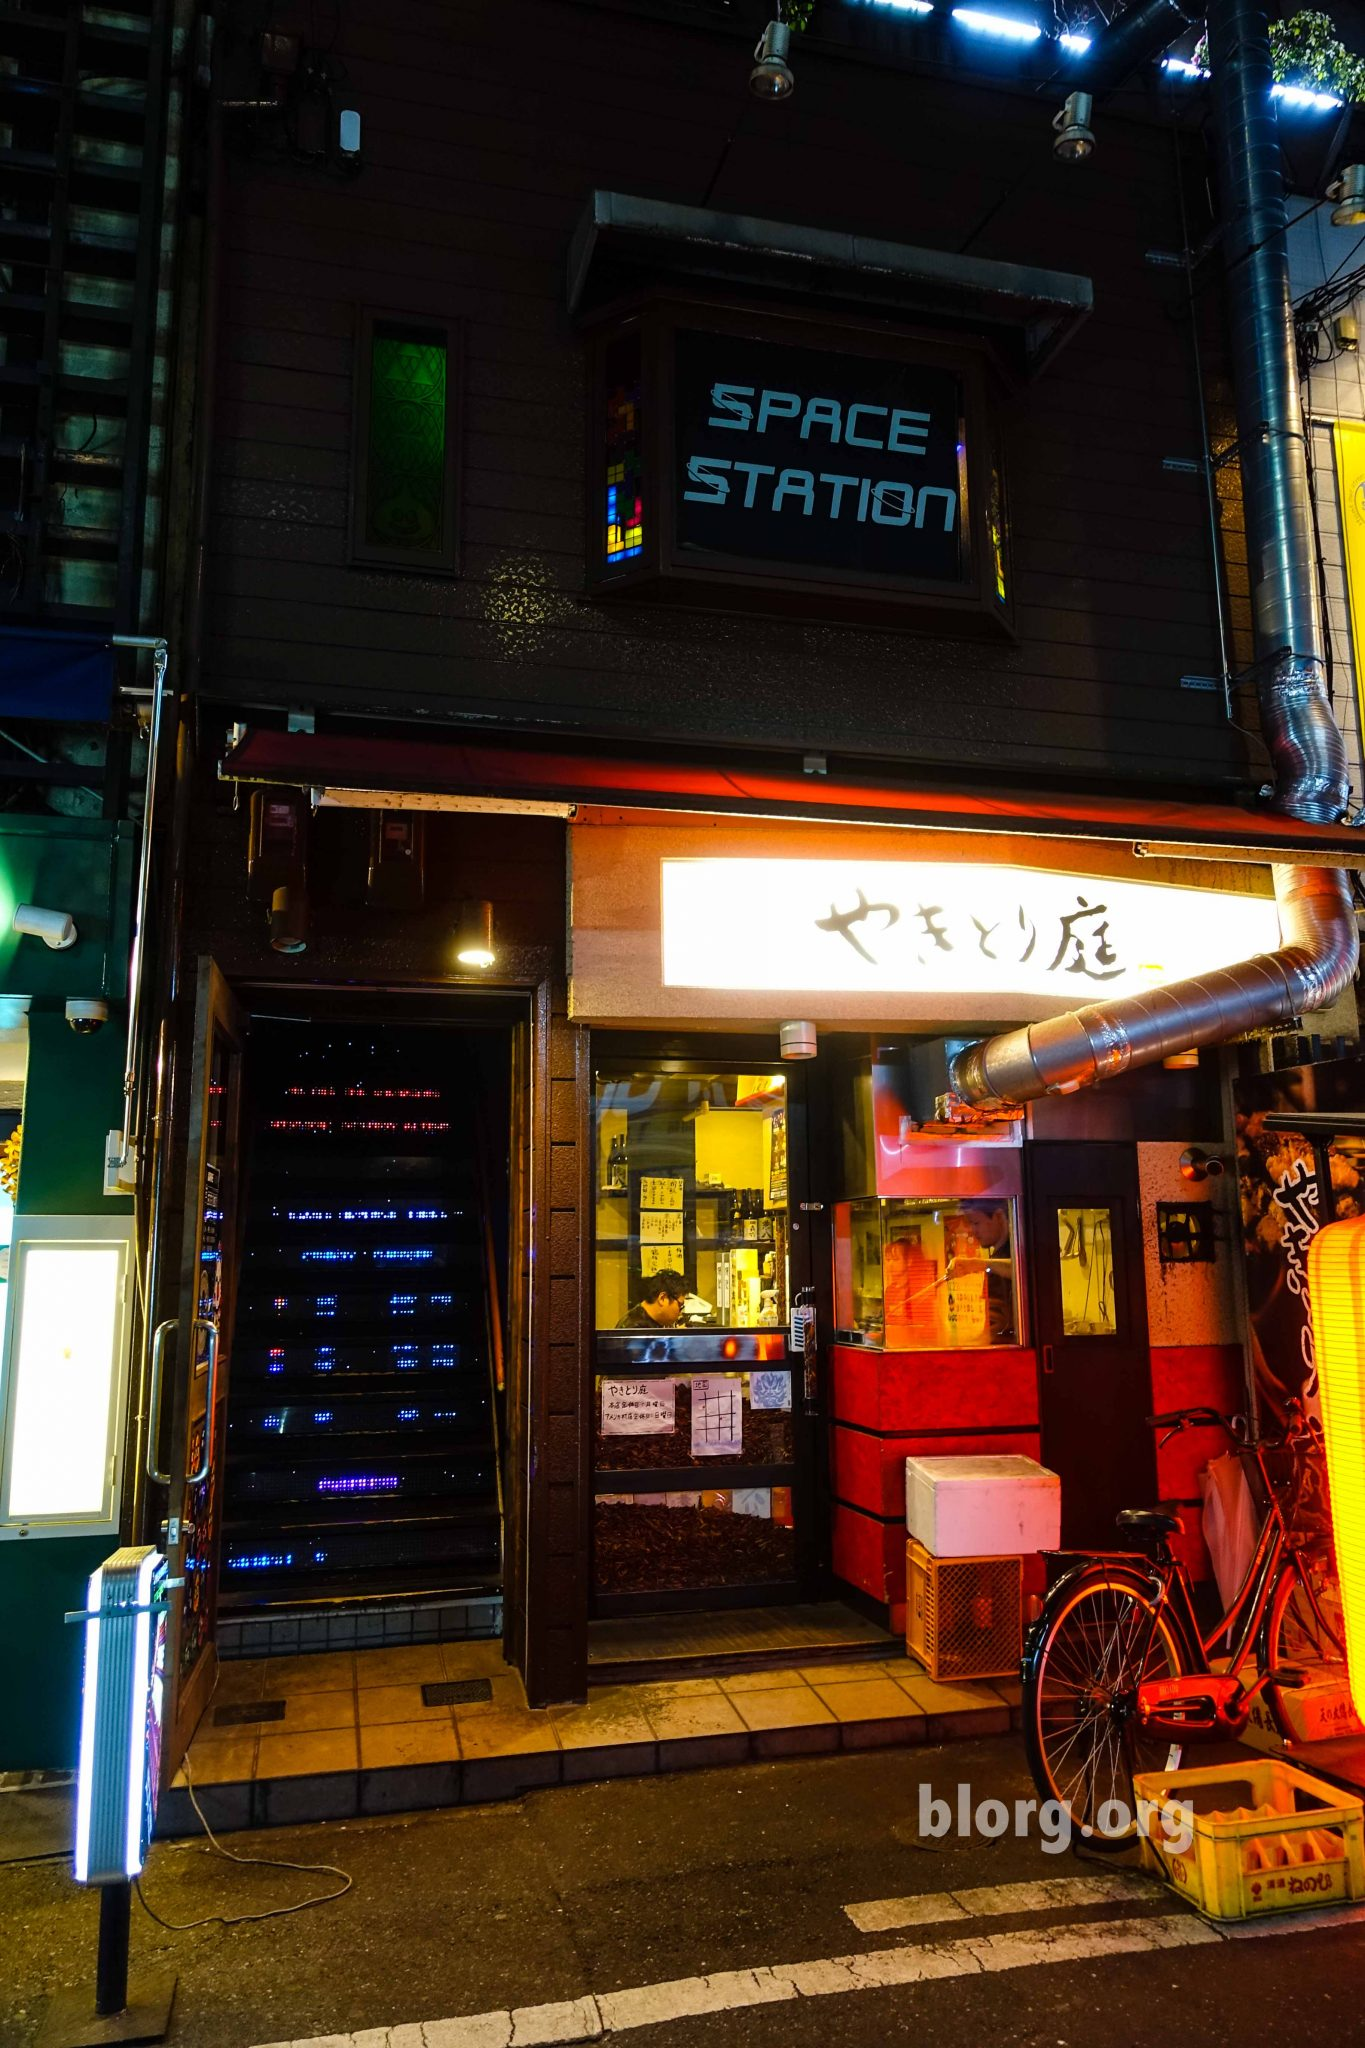 Space Station Arcade Bar in Japan